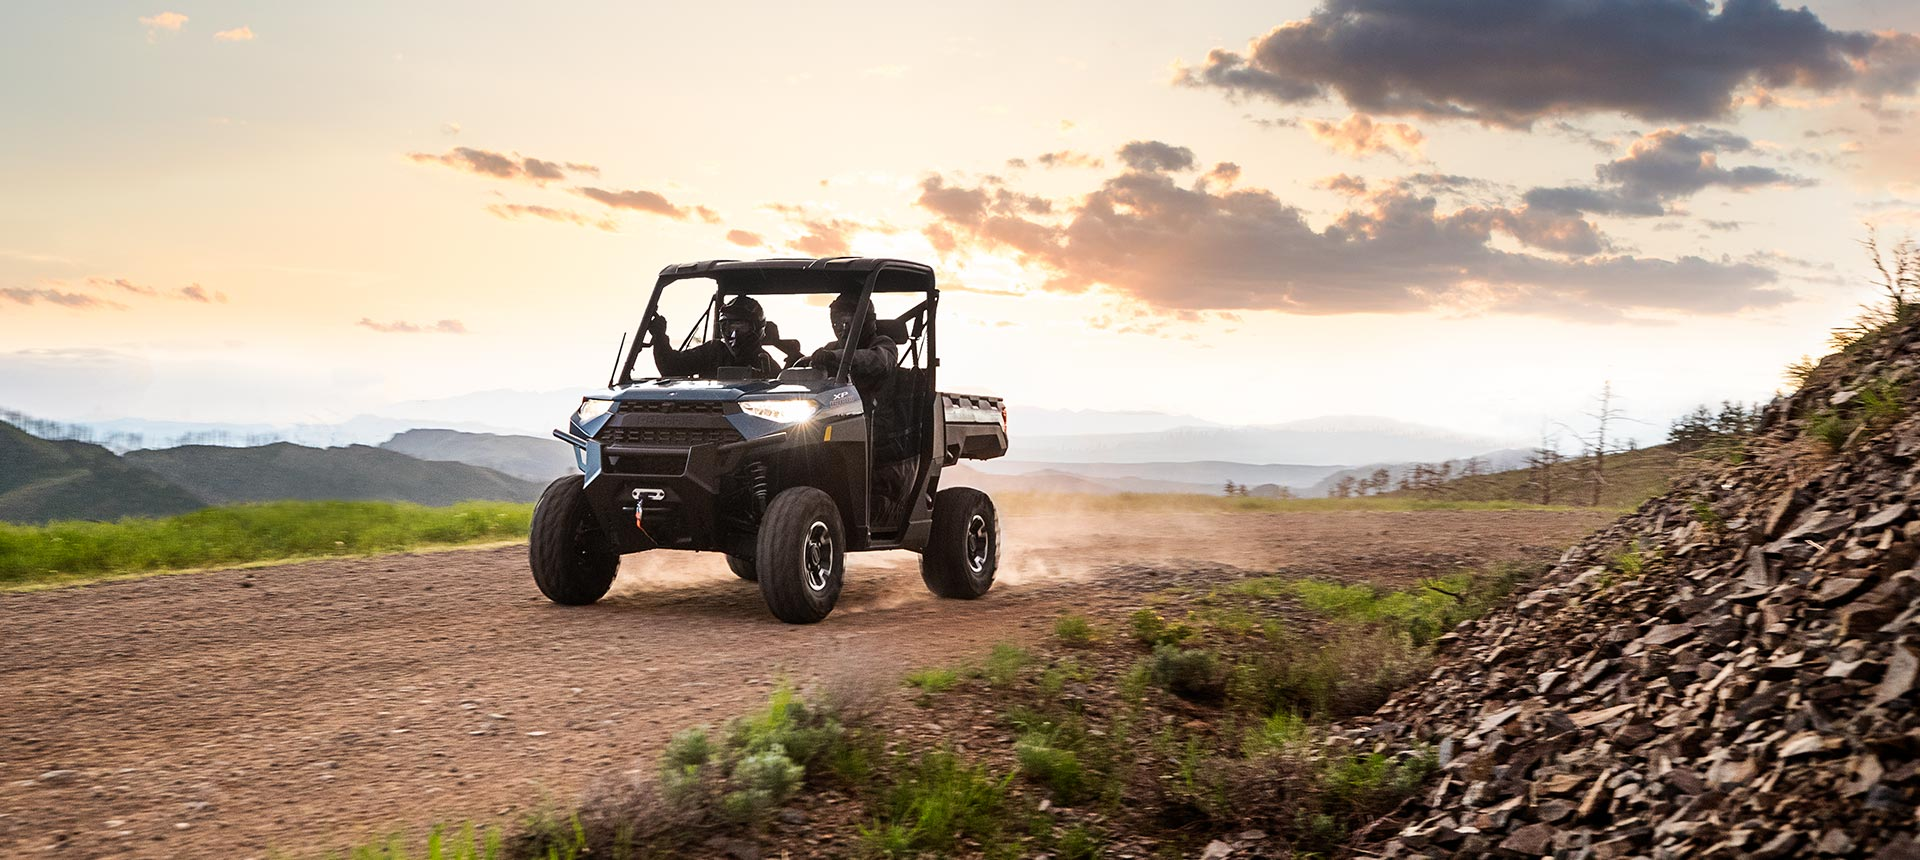 2019 Polaris Ranger XP 1000 EPS in Sumter, South Carolina